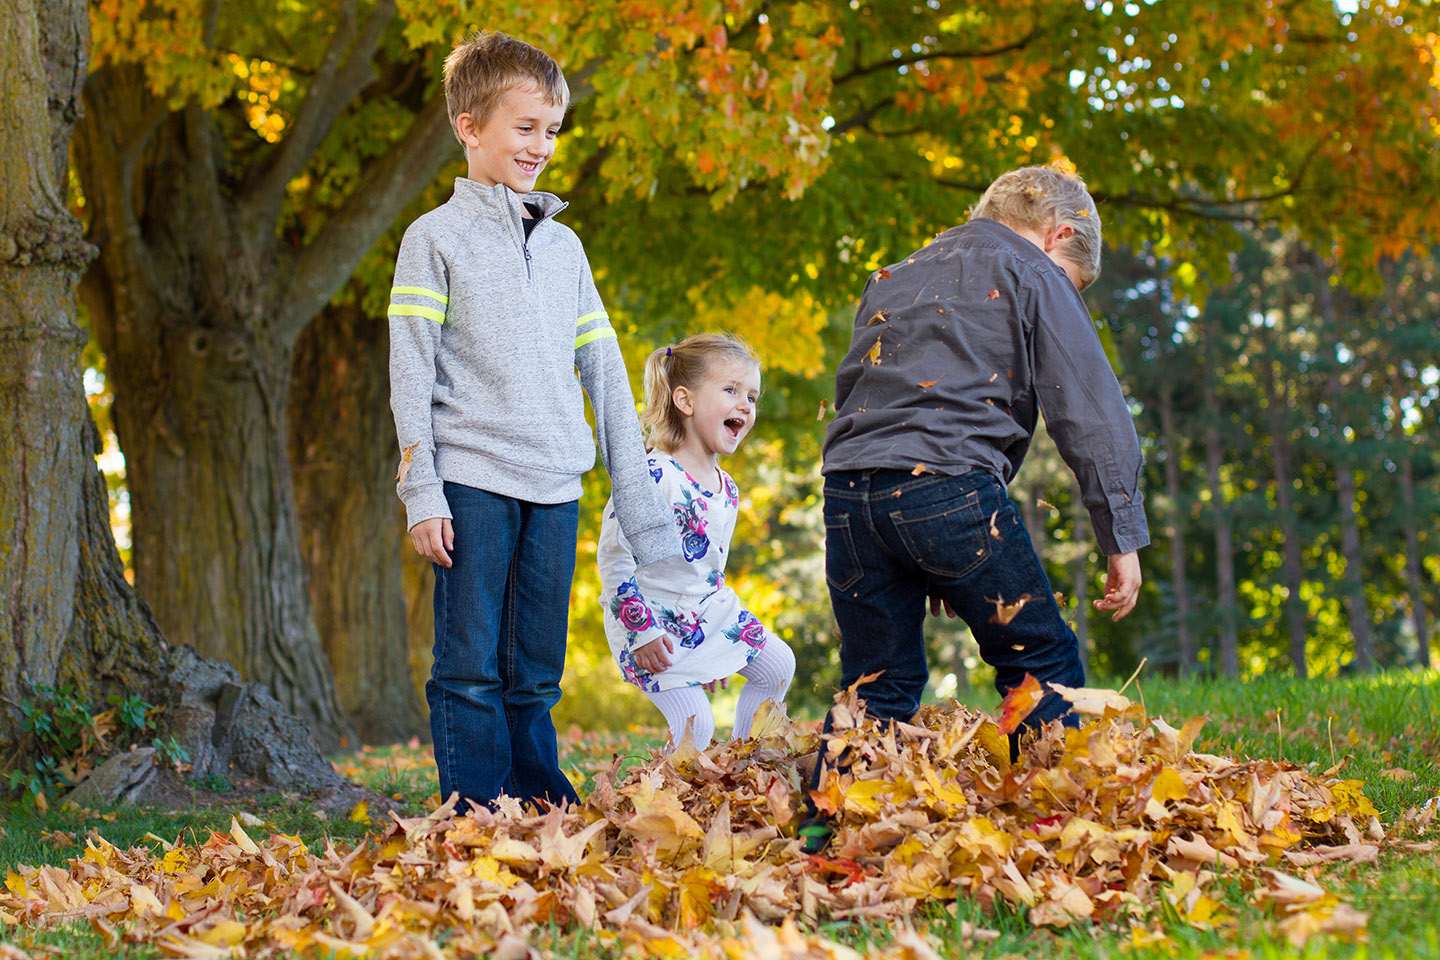 Fun photo of children playing in leaves in an autumn photo in Hockley, taken by Frank Myrland Photography